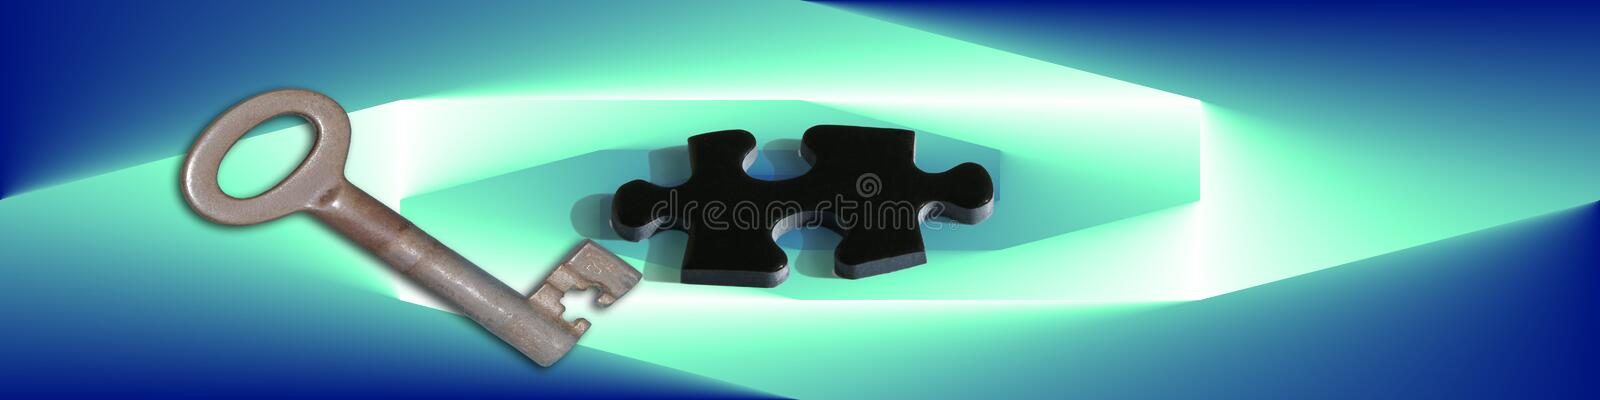 Banner Puzzles And Keys. Digital banner / header with a puzzle- piece and a key symbols for having (business) problems and finding the solution stock illustration